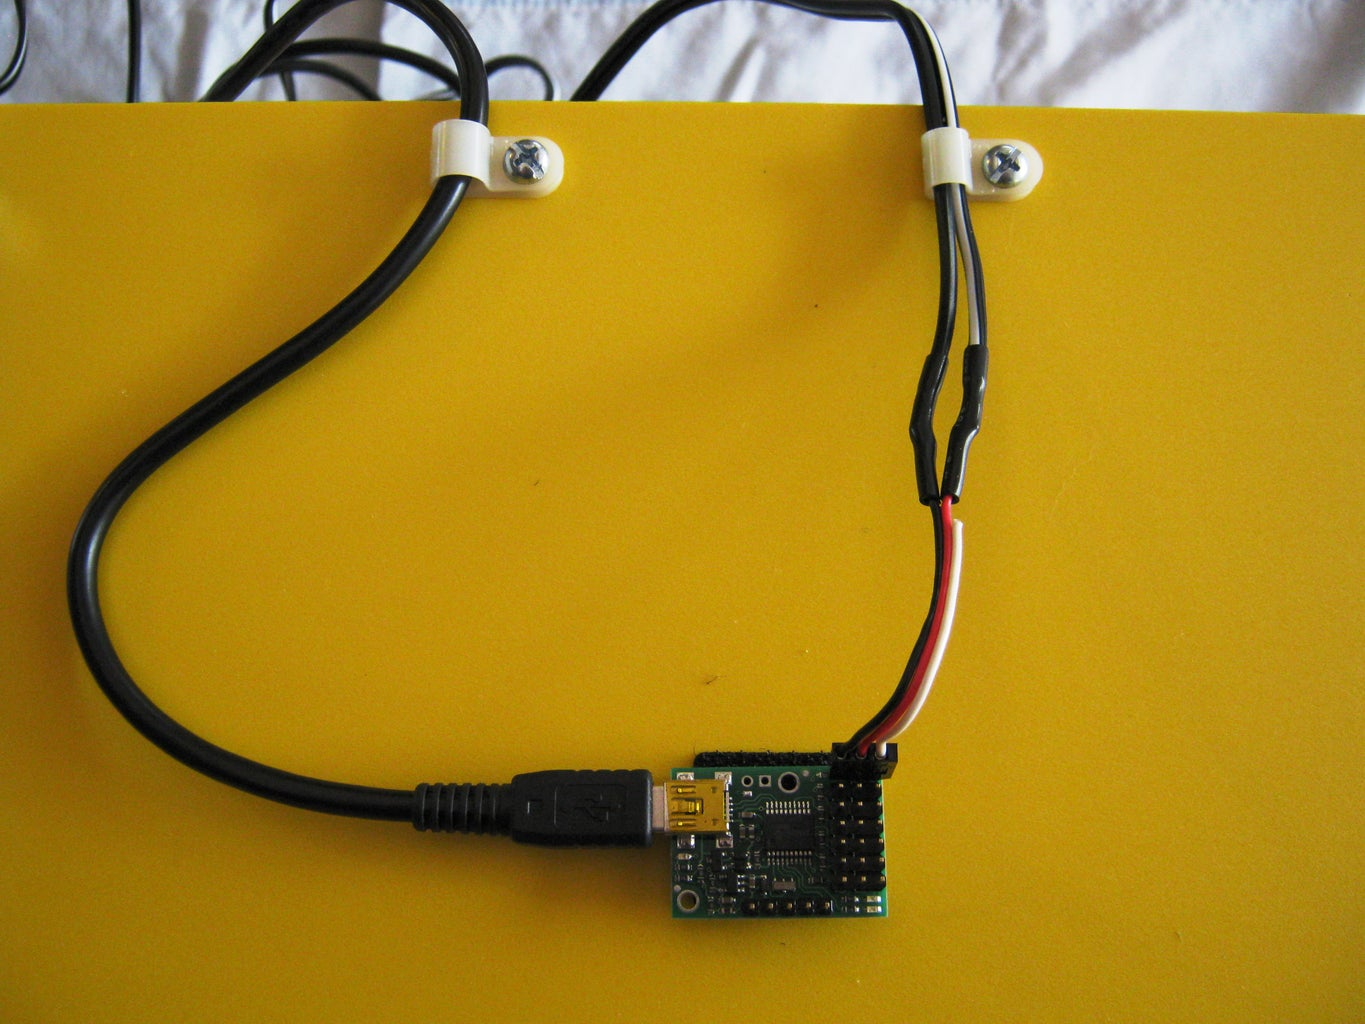 Mount the Microcontroller